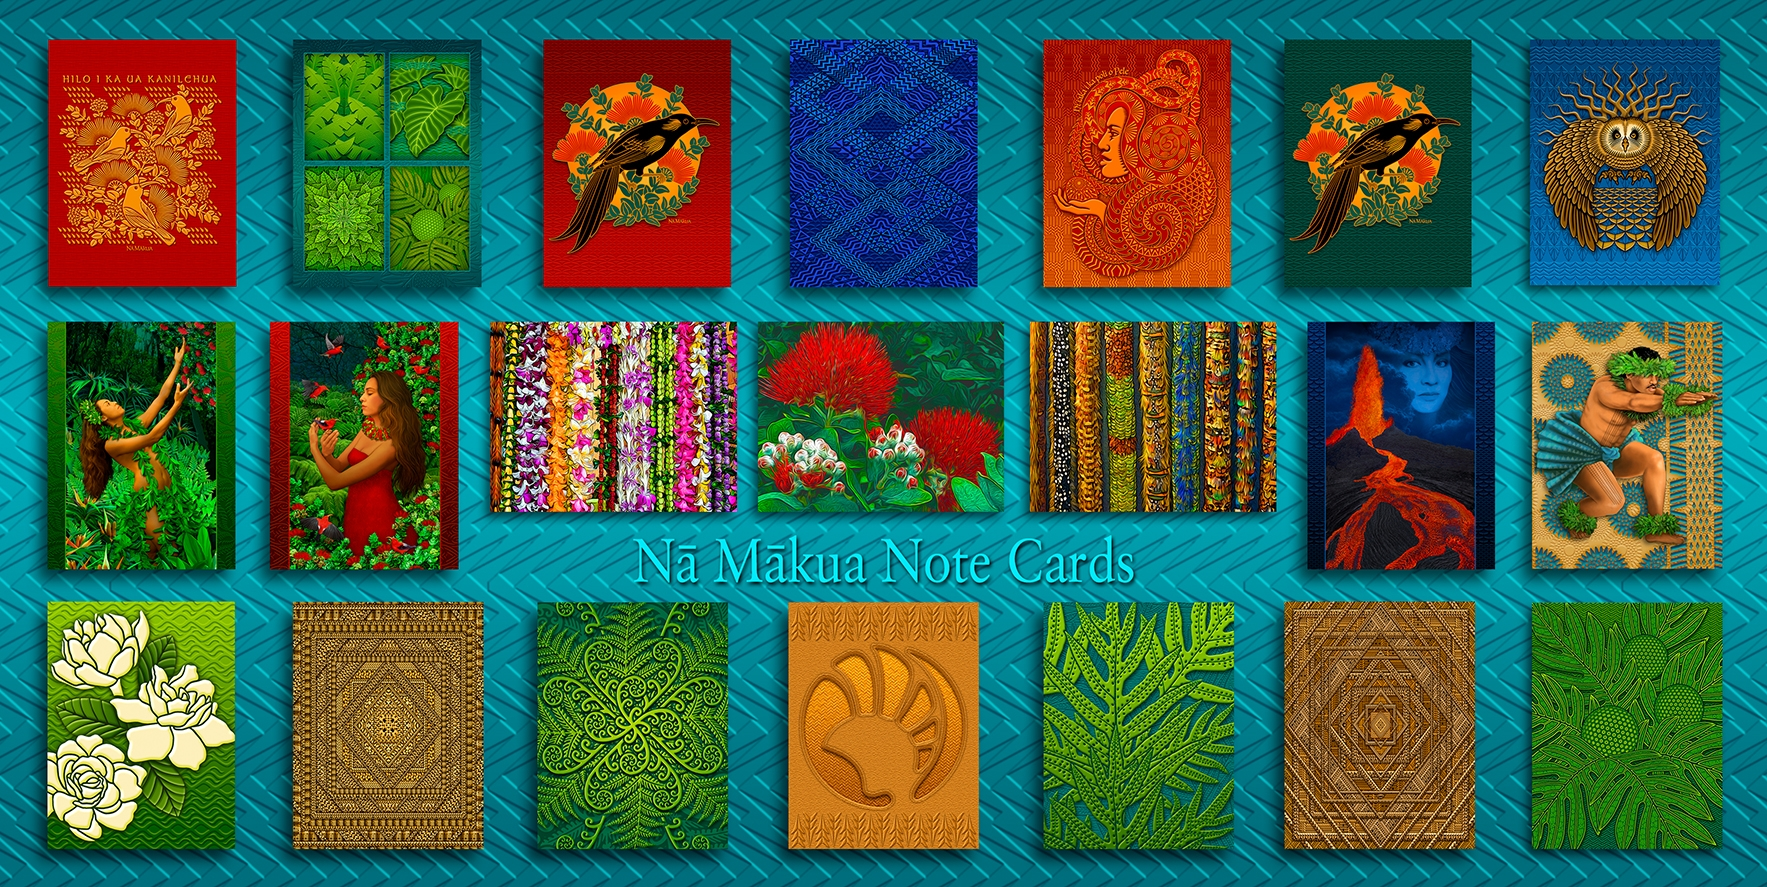 Na Makua Notecards Homepage